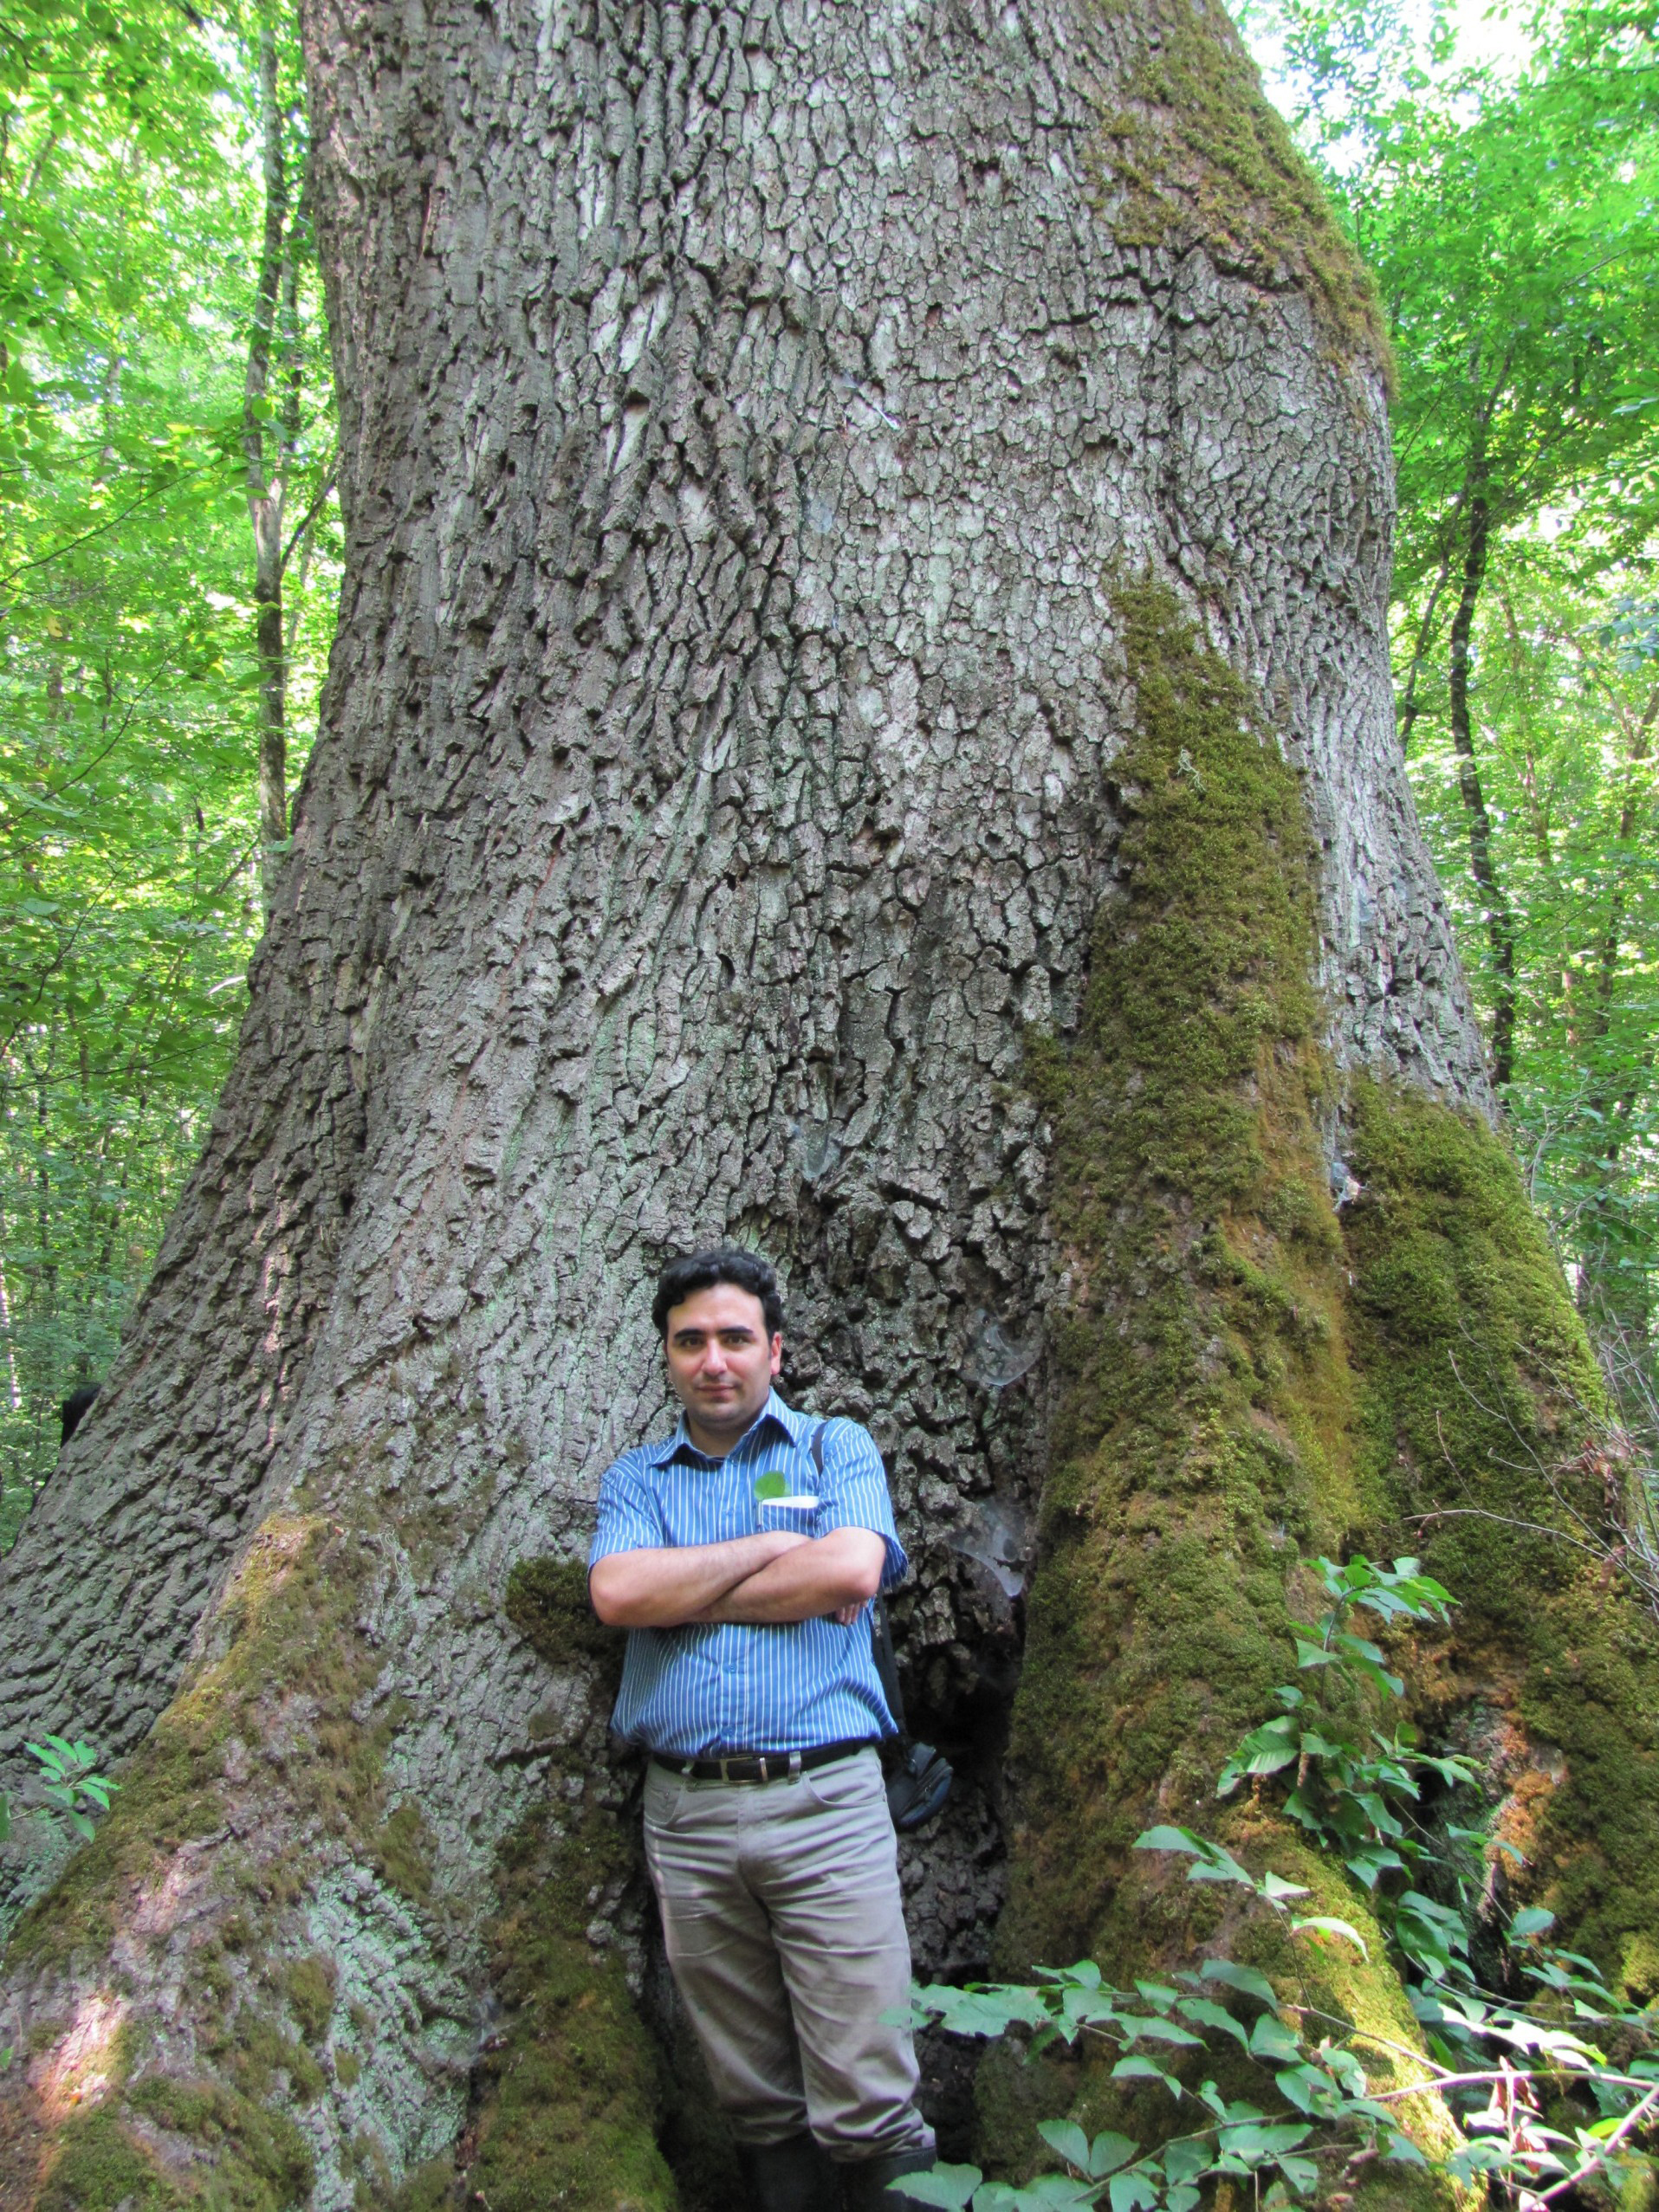 Kiomars Sefidi standing in front of a very large old-growth tree